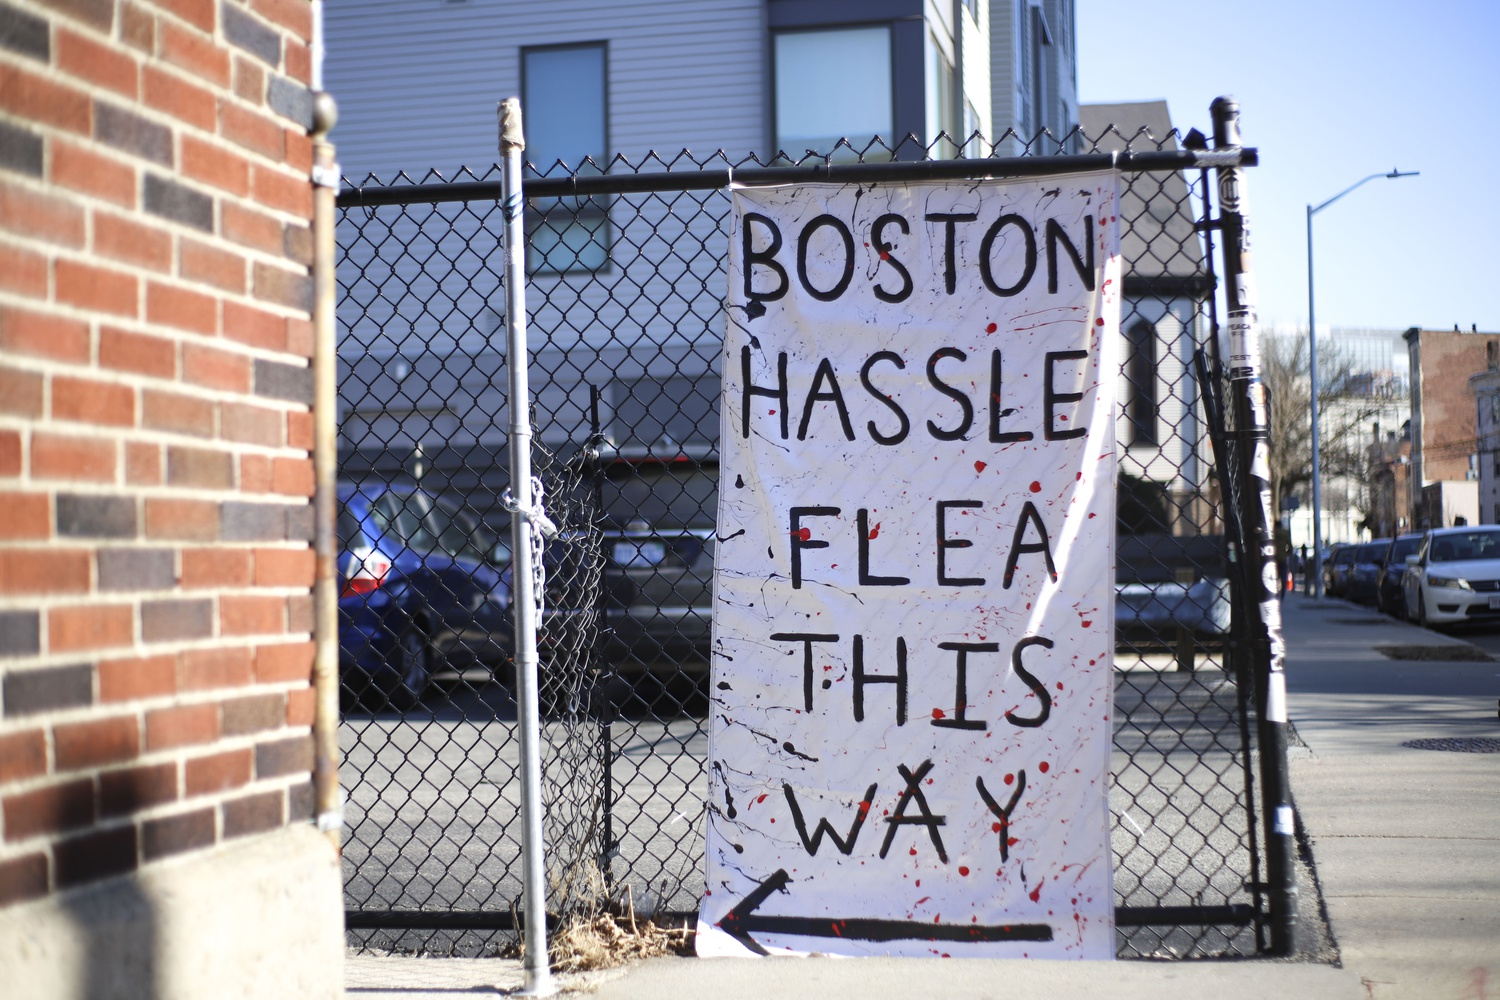 On Saturday afternoon, Boston Hassle had their bi-monthly art and flea market at Elks Lodge in Central Square.